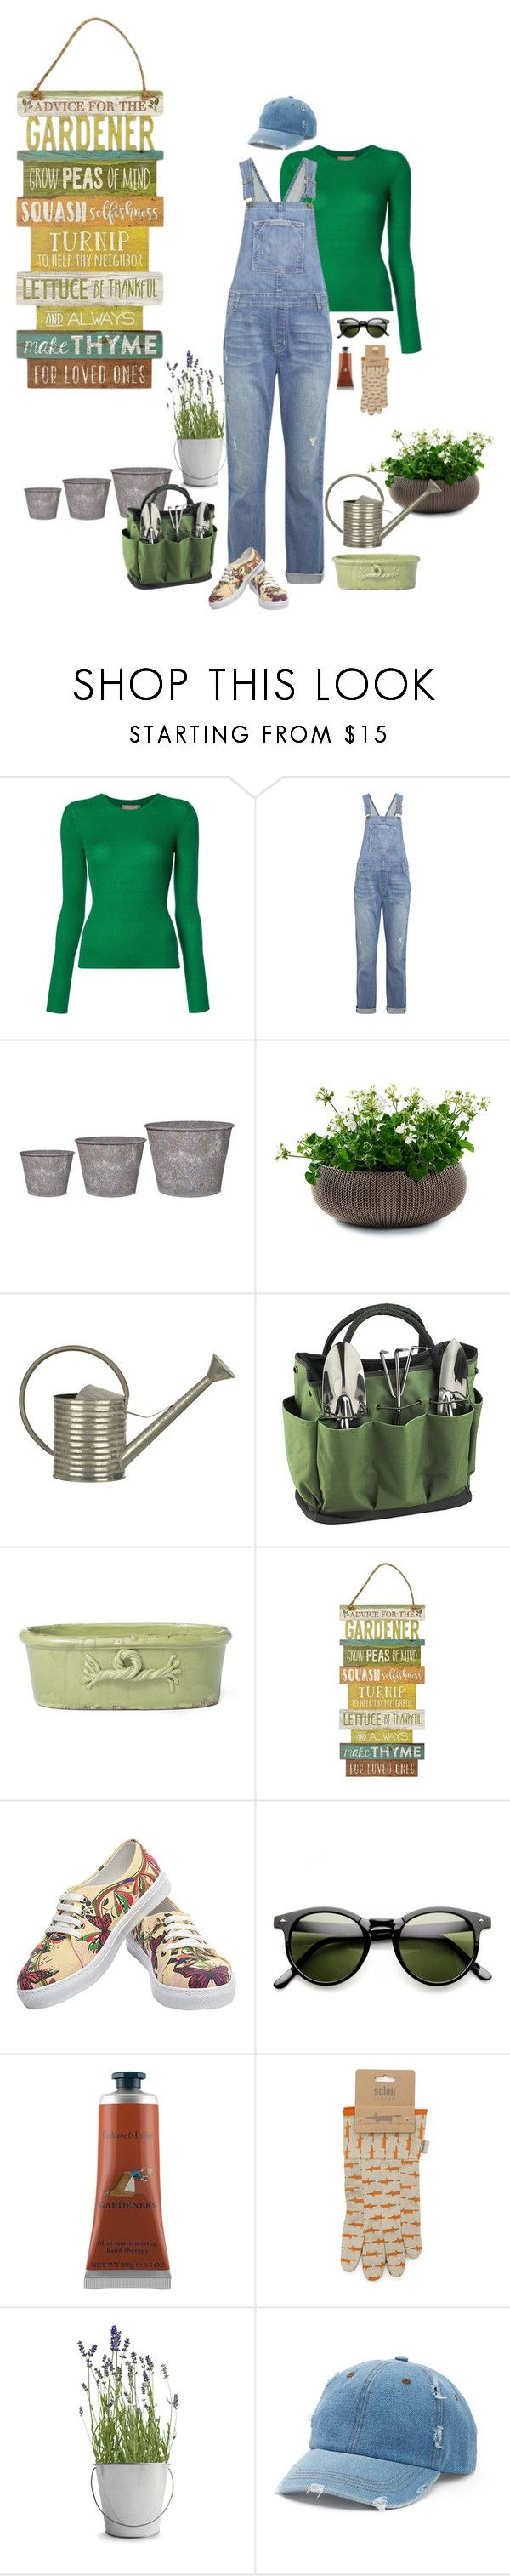 """""""Unbenannt #996"""" by lila77 ❤ liked on Polyvore featuring Michael Kors, Current/Elliott, Garden Trading, Keter, Picnic at Ascot, Crabtree & Evelyn, Scion, Potting Shed Creations and Mudd"""